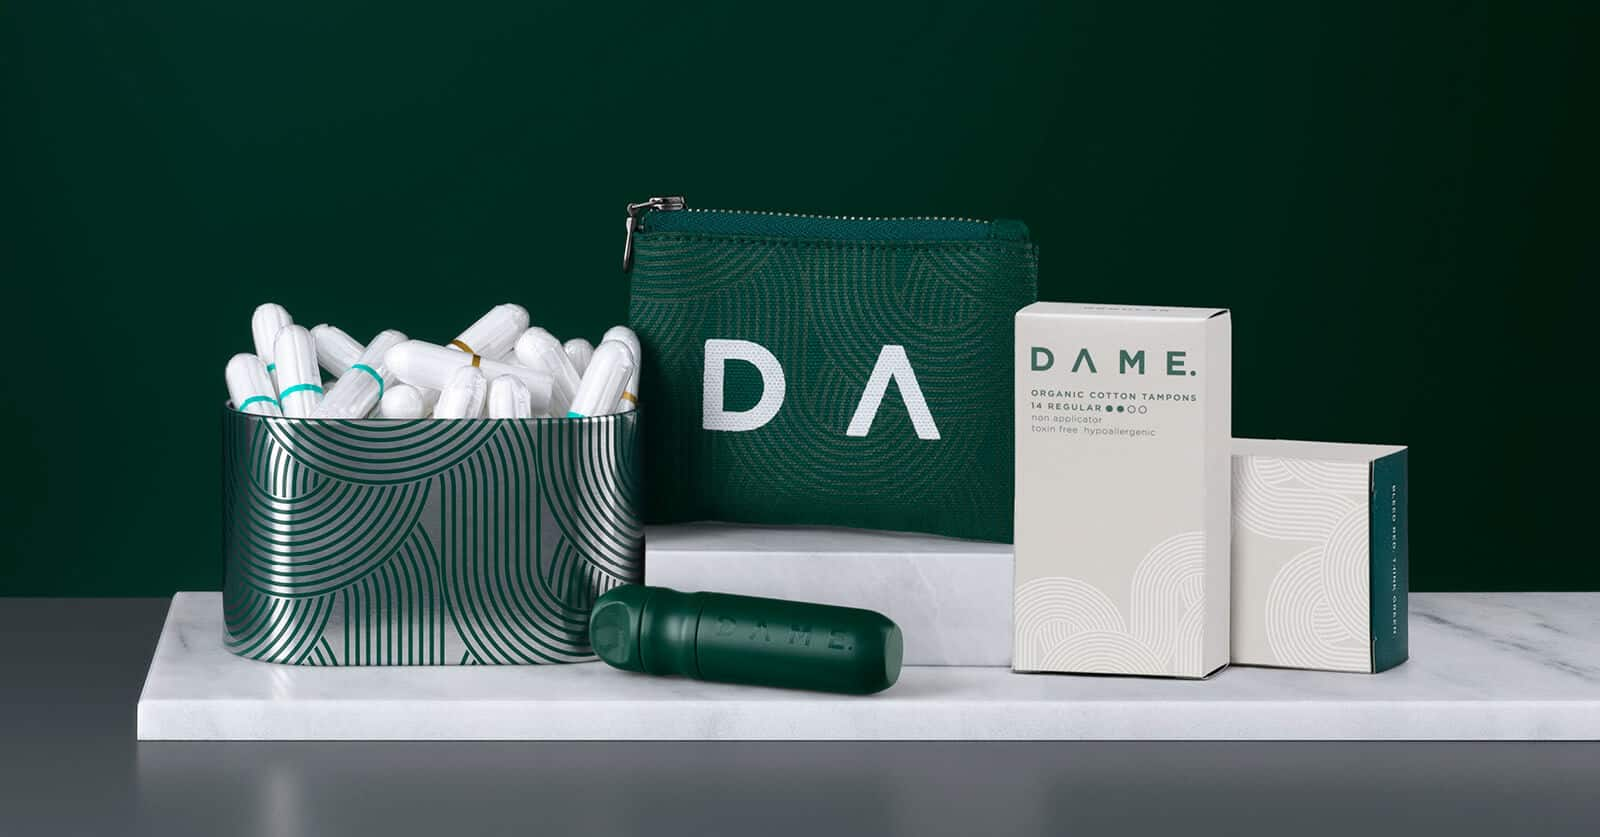 DAME Sustainable Plastic Free Period Products